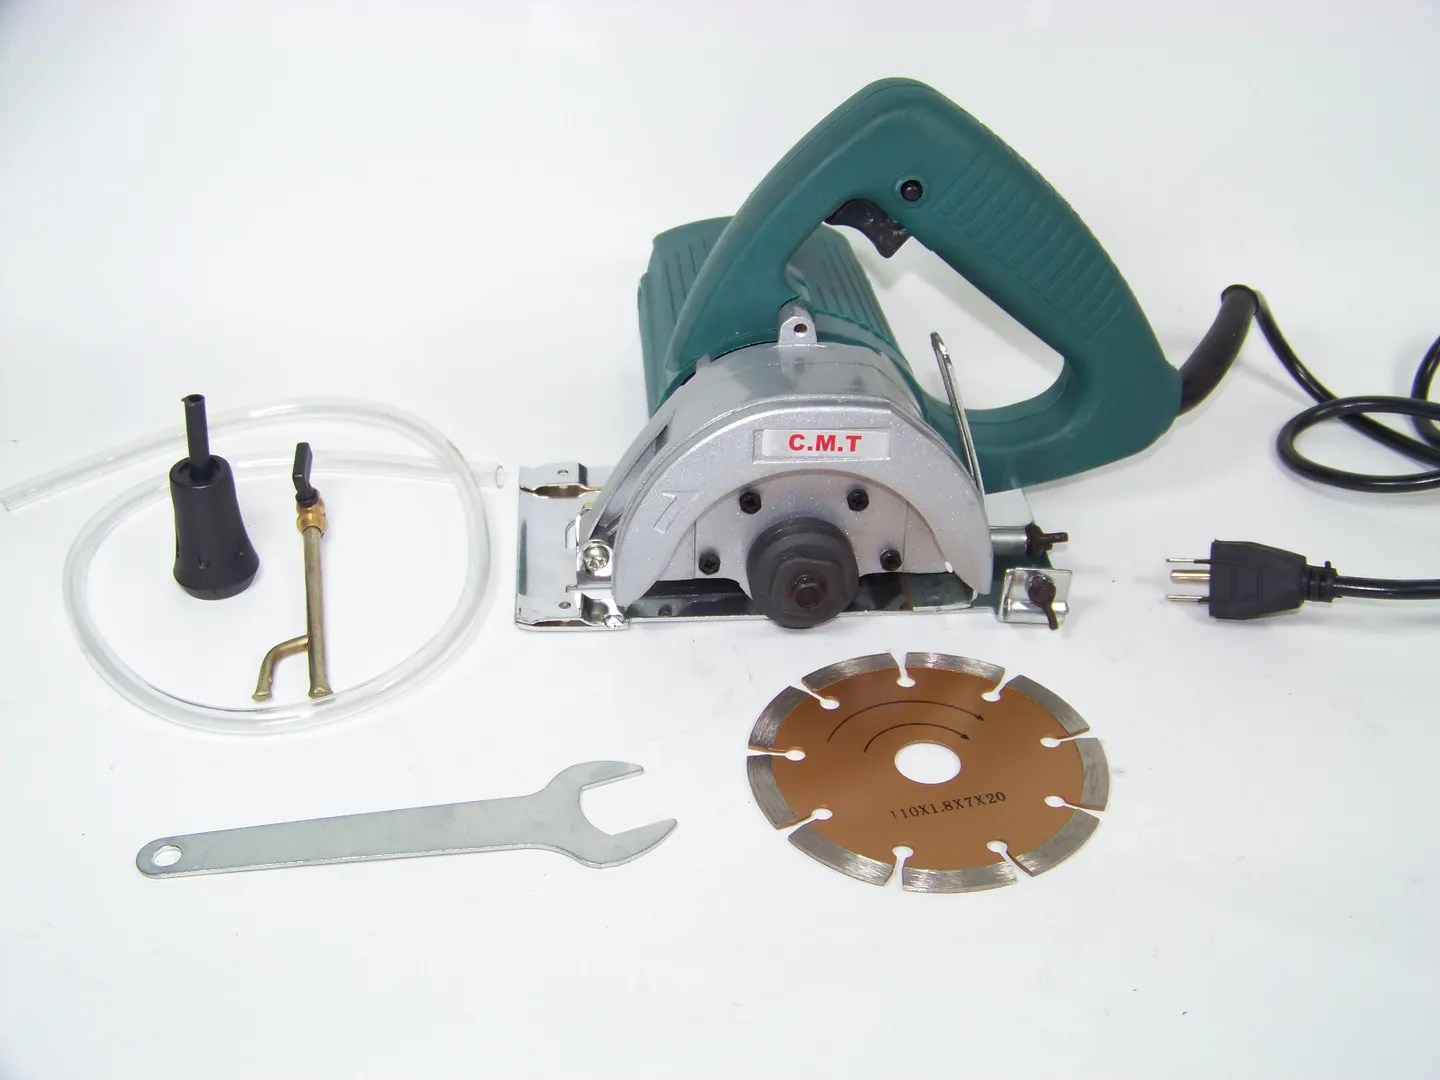 woodworking cutters